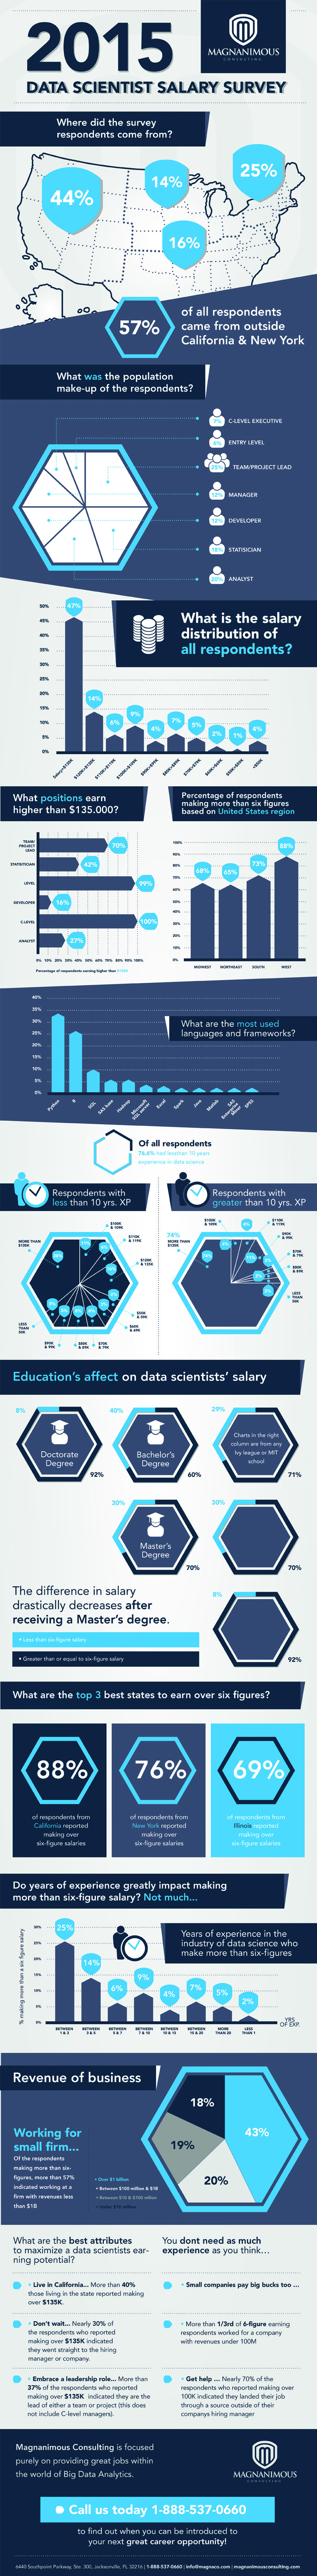 How Much Do Data Scientists Make